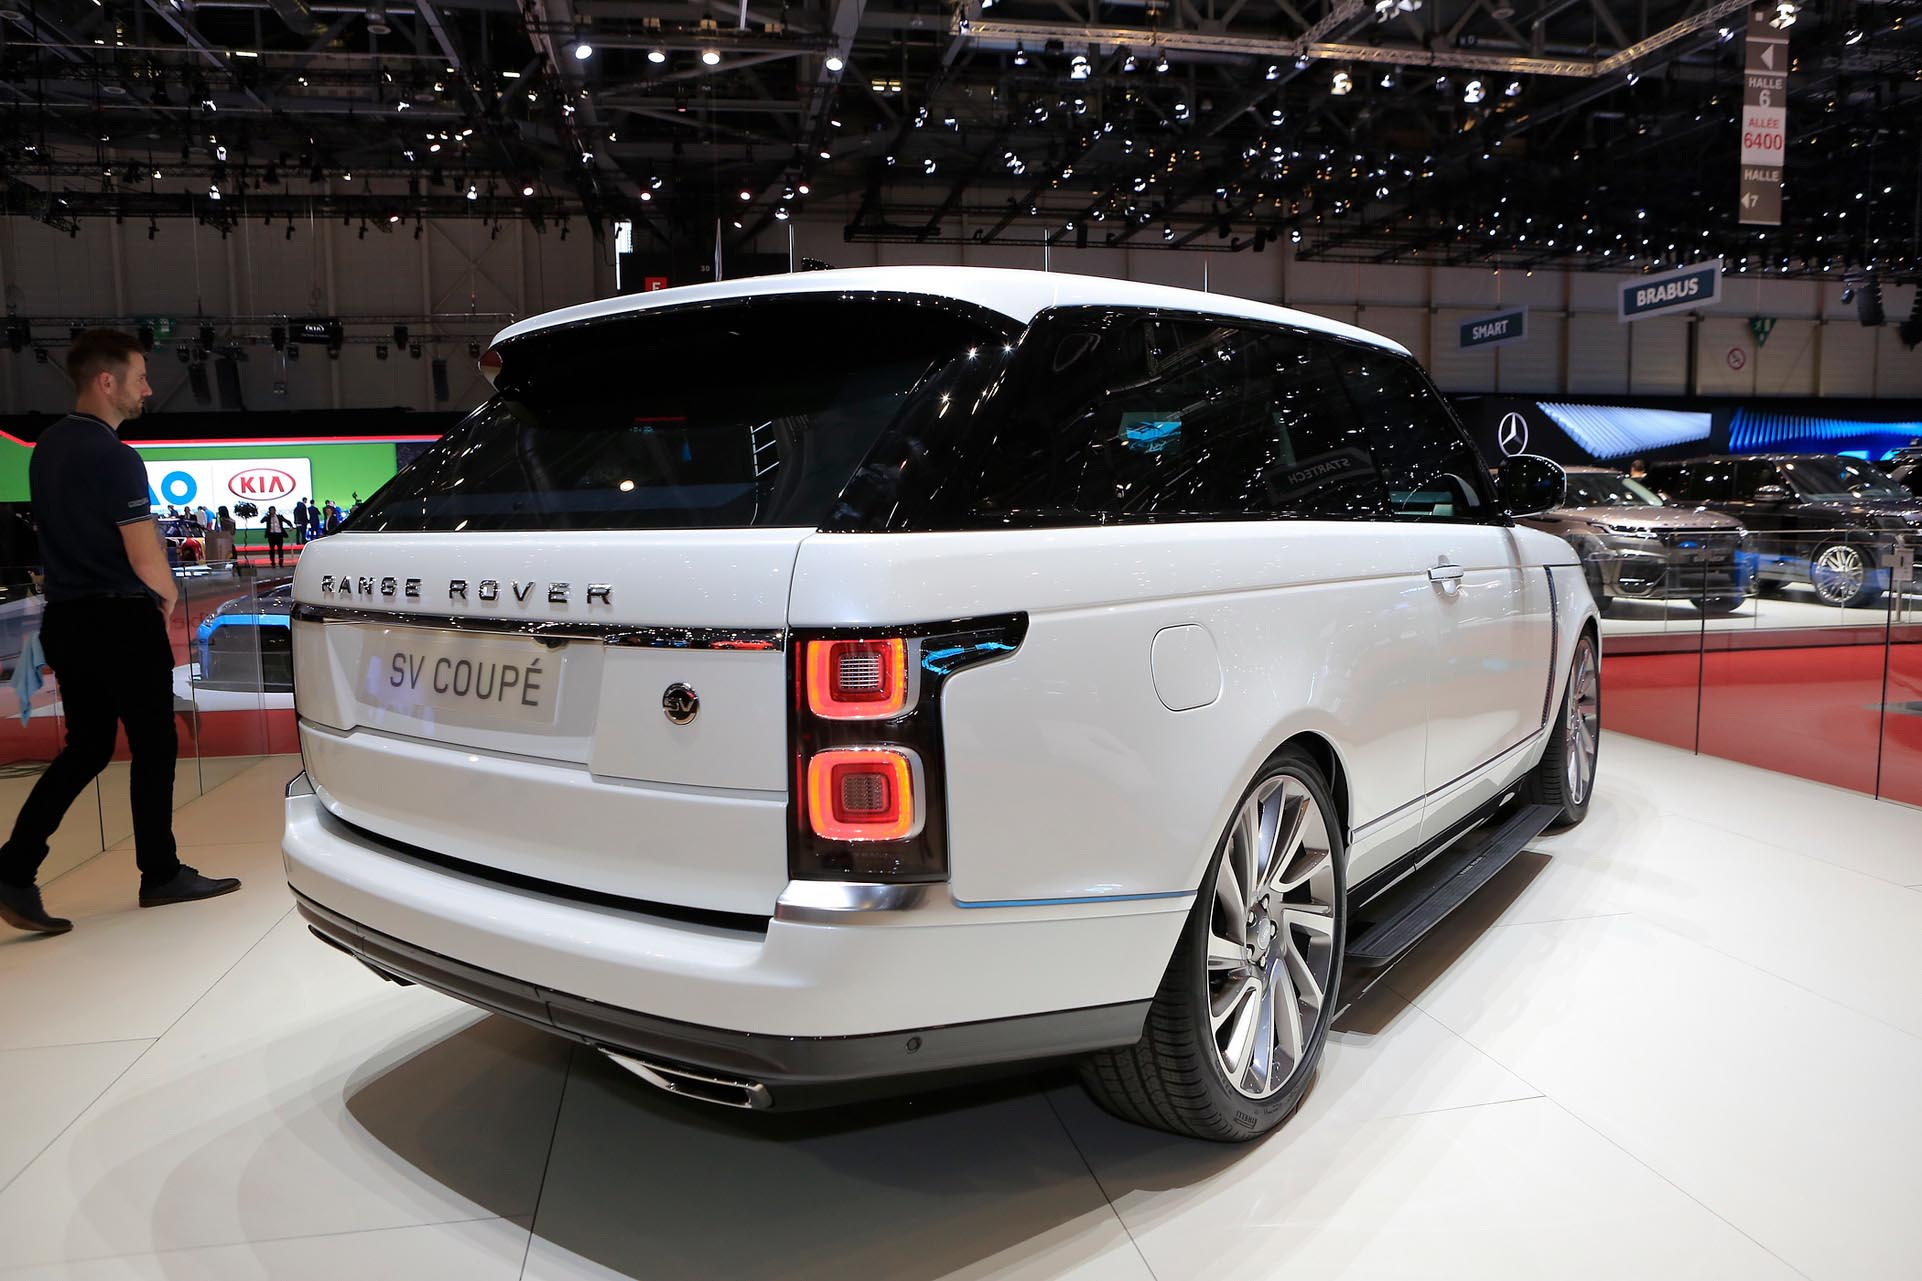 SV Coupe - luksusowy 2-drzwiowy Range Rover